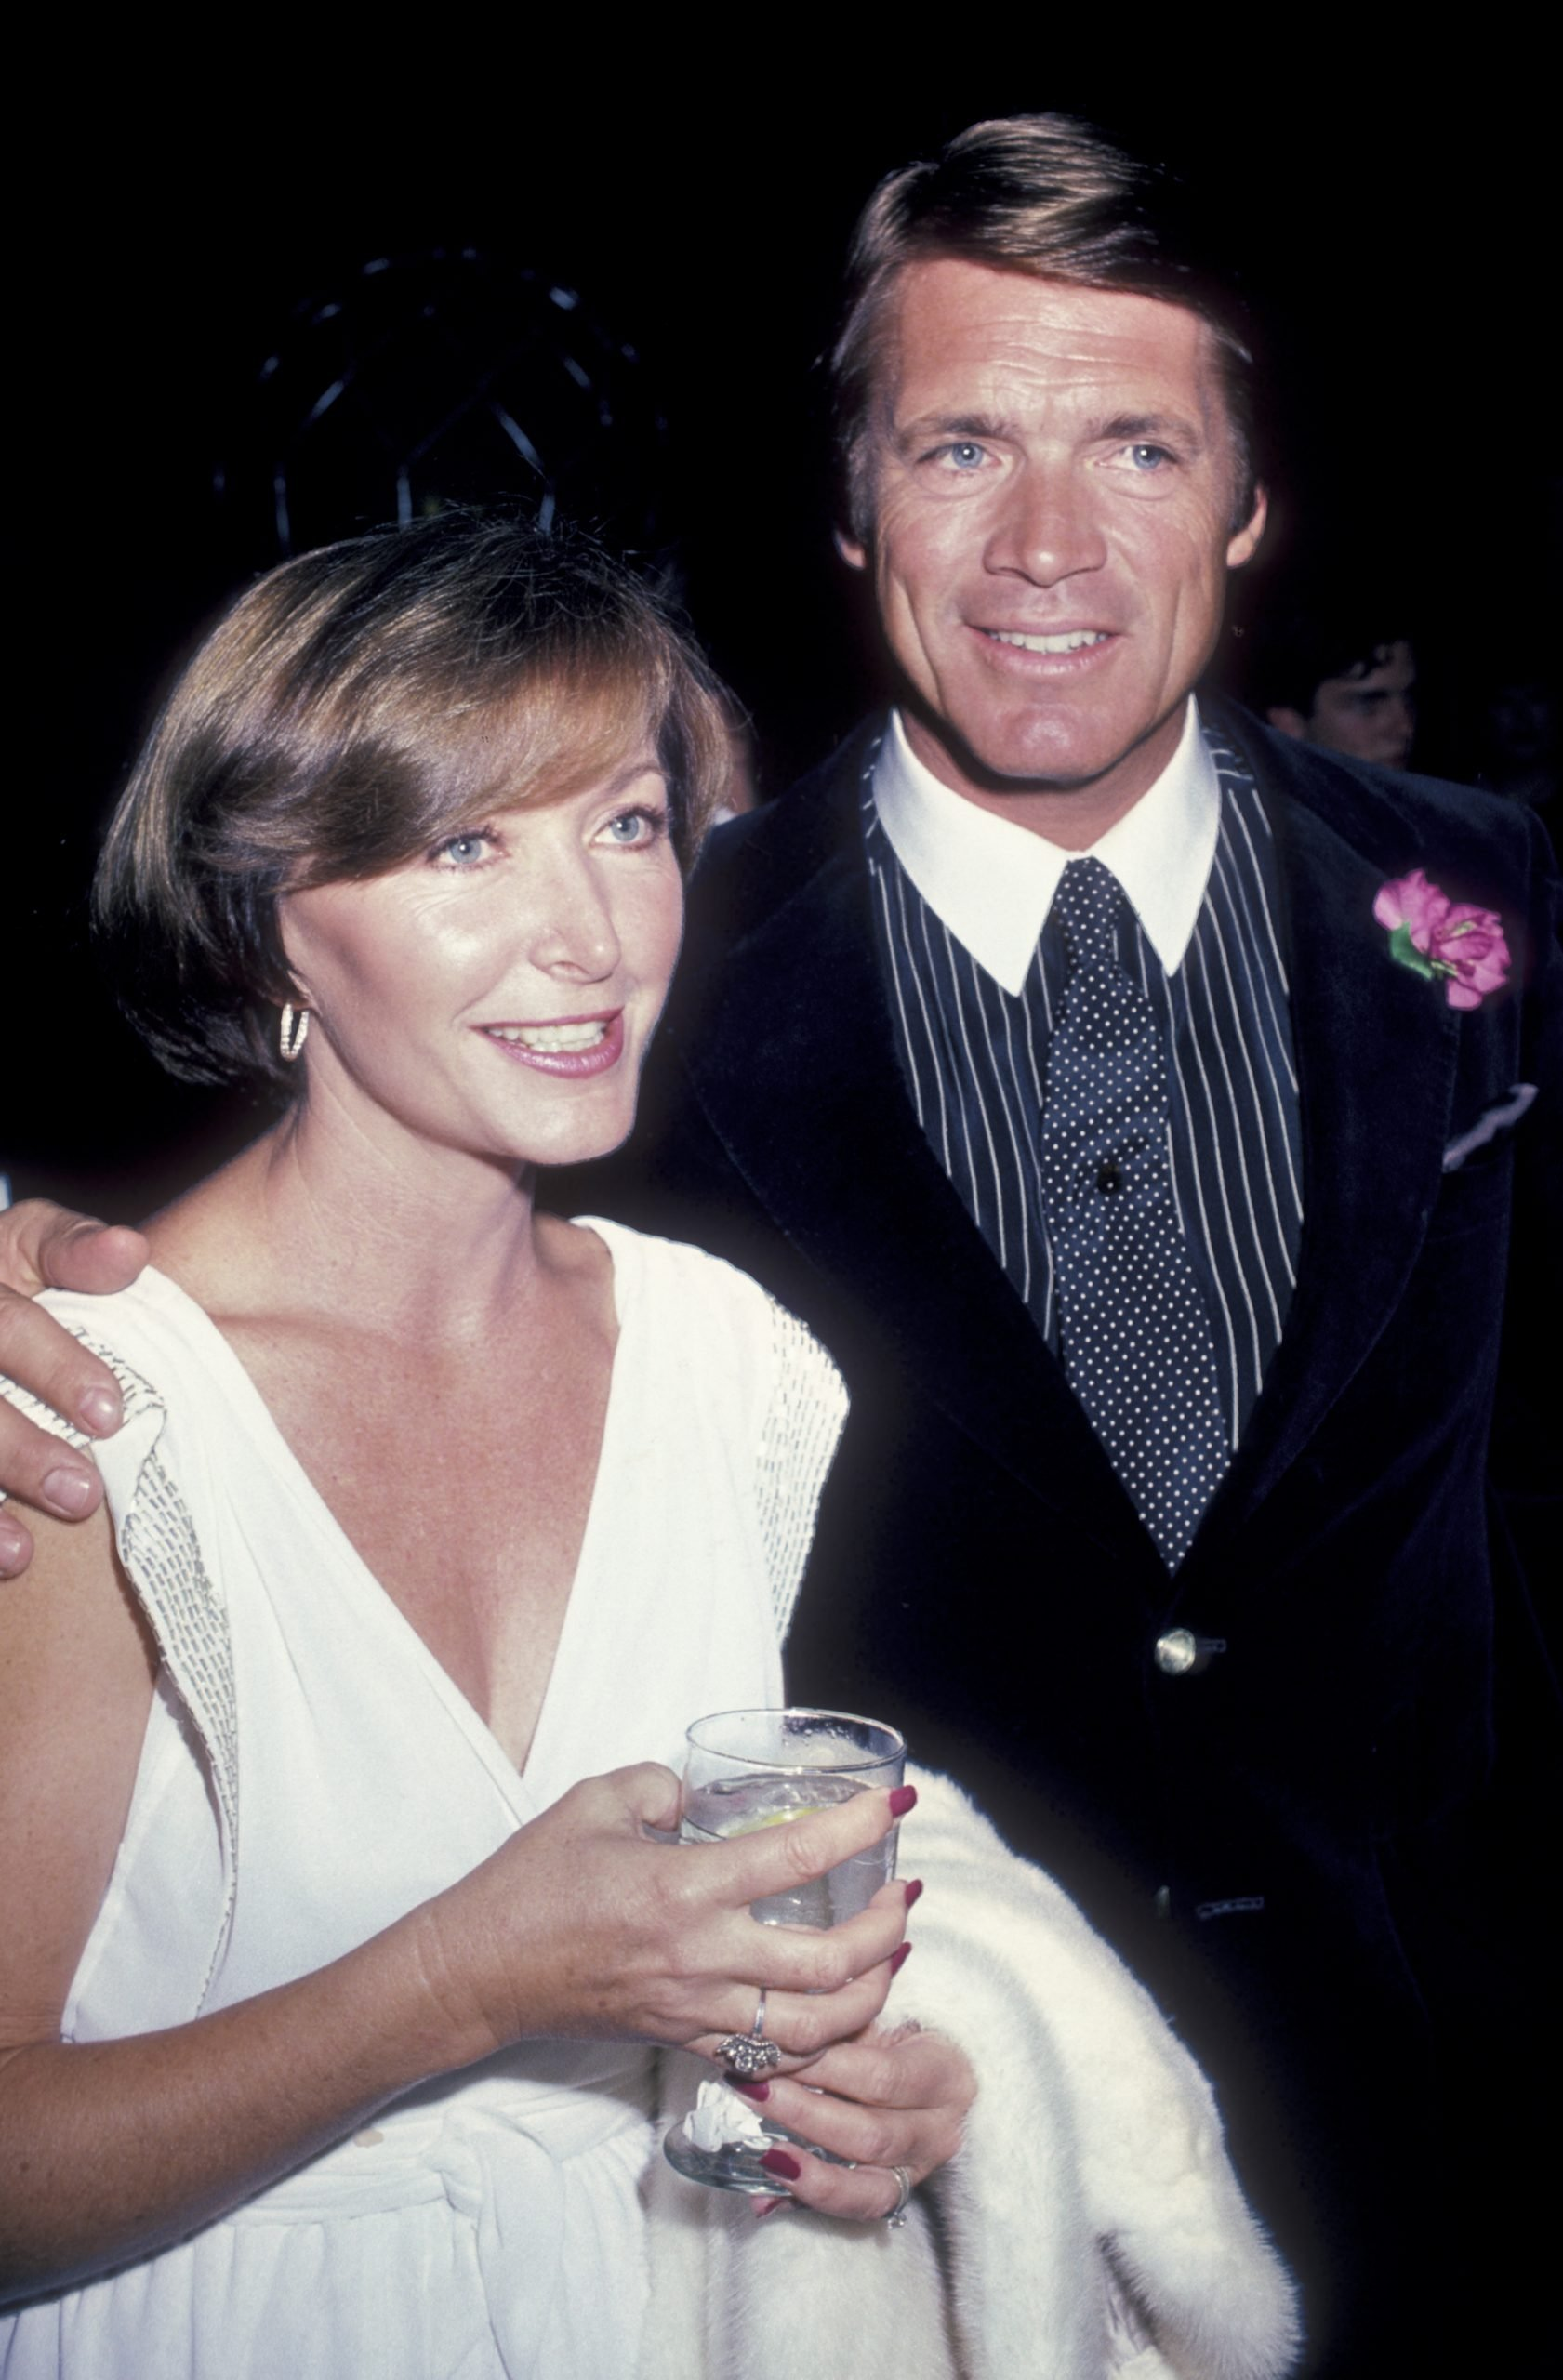 Looking Back At Chad Everett And Shelby Grant's 40+ Years Of Marriage